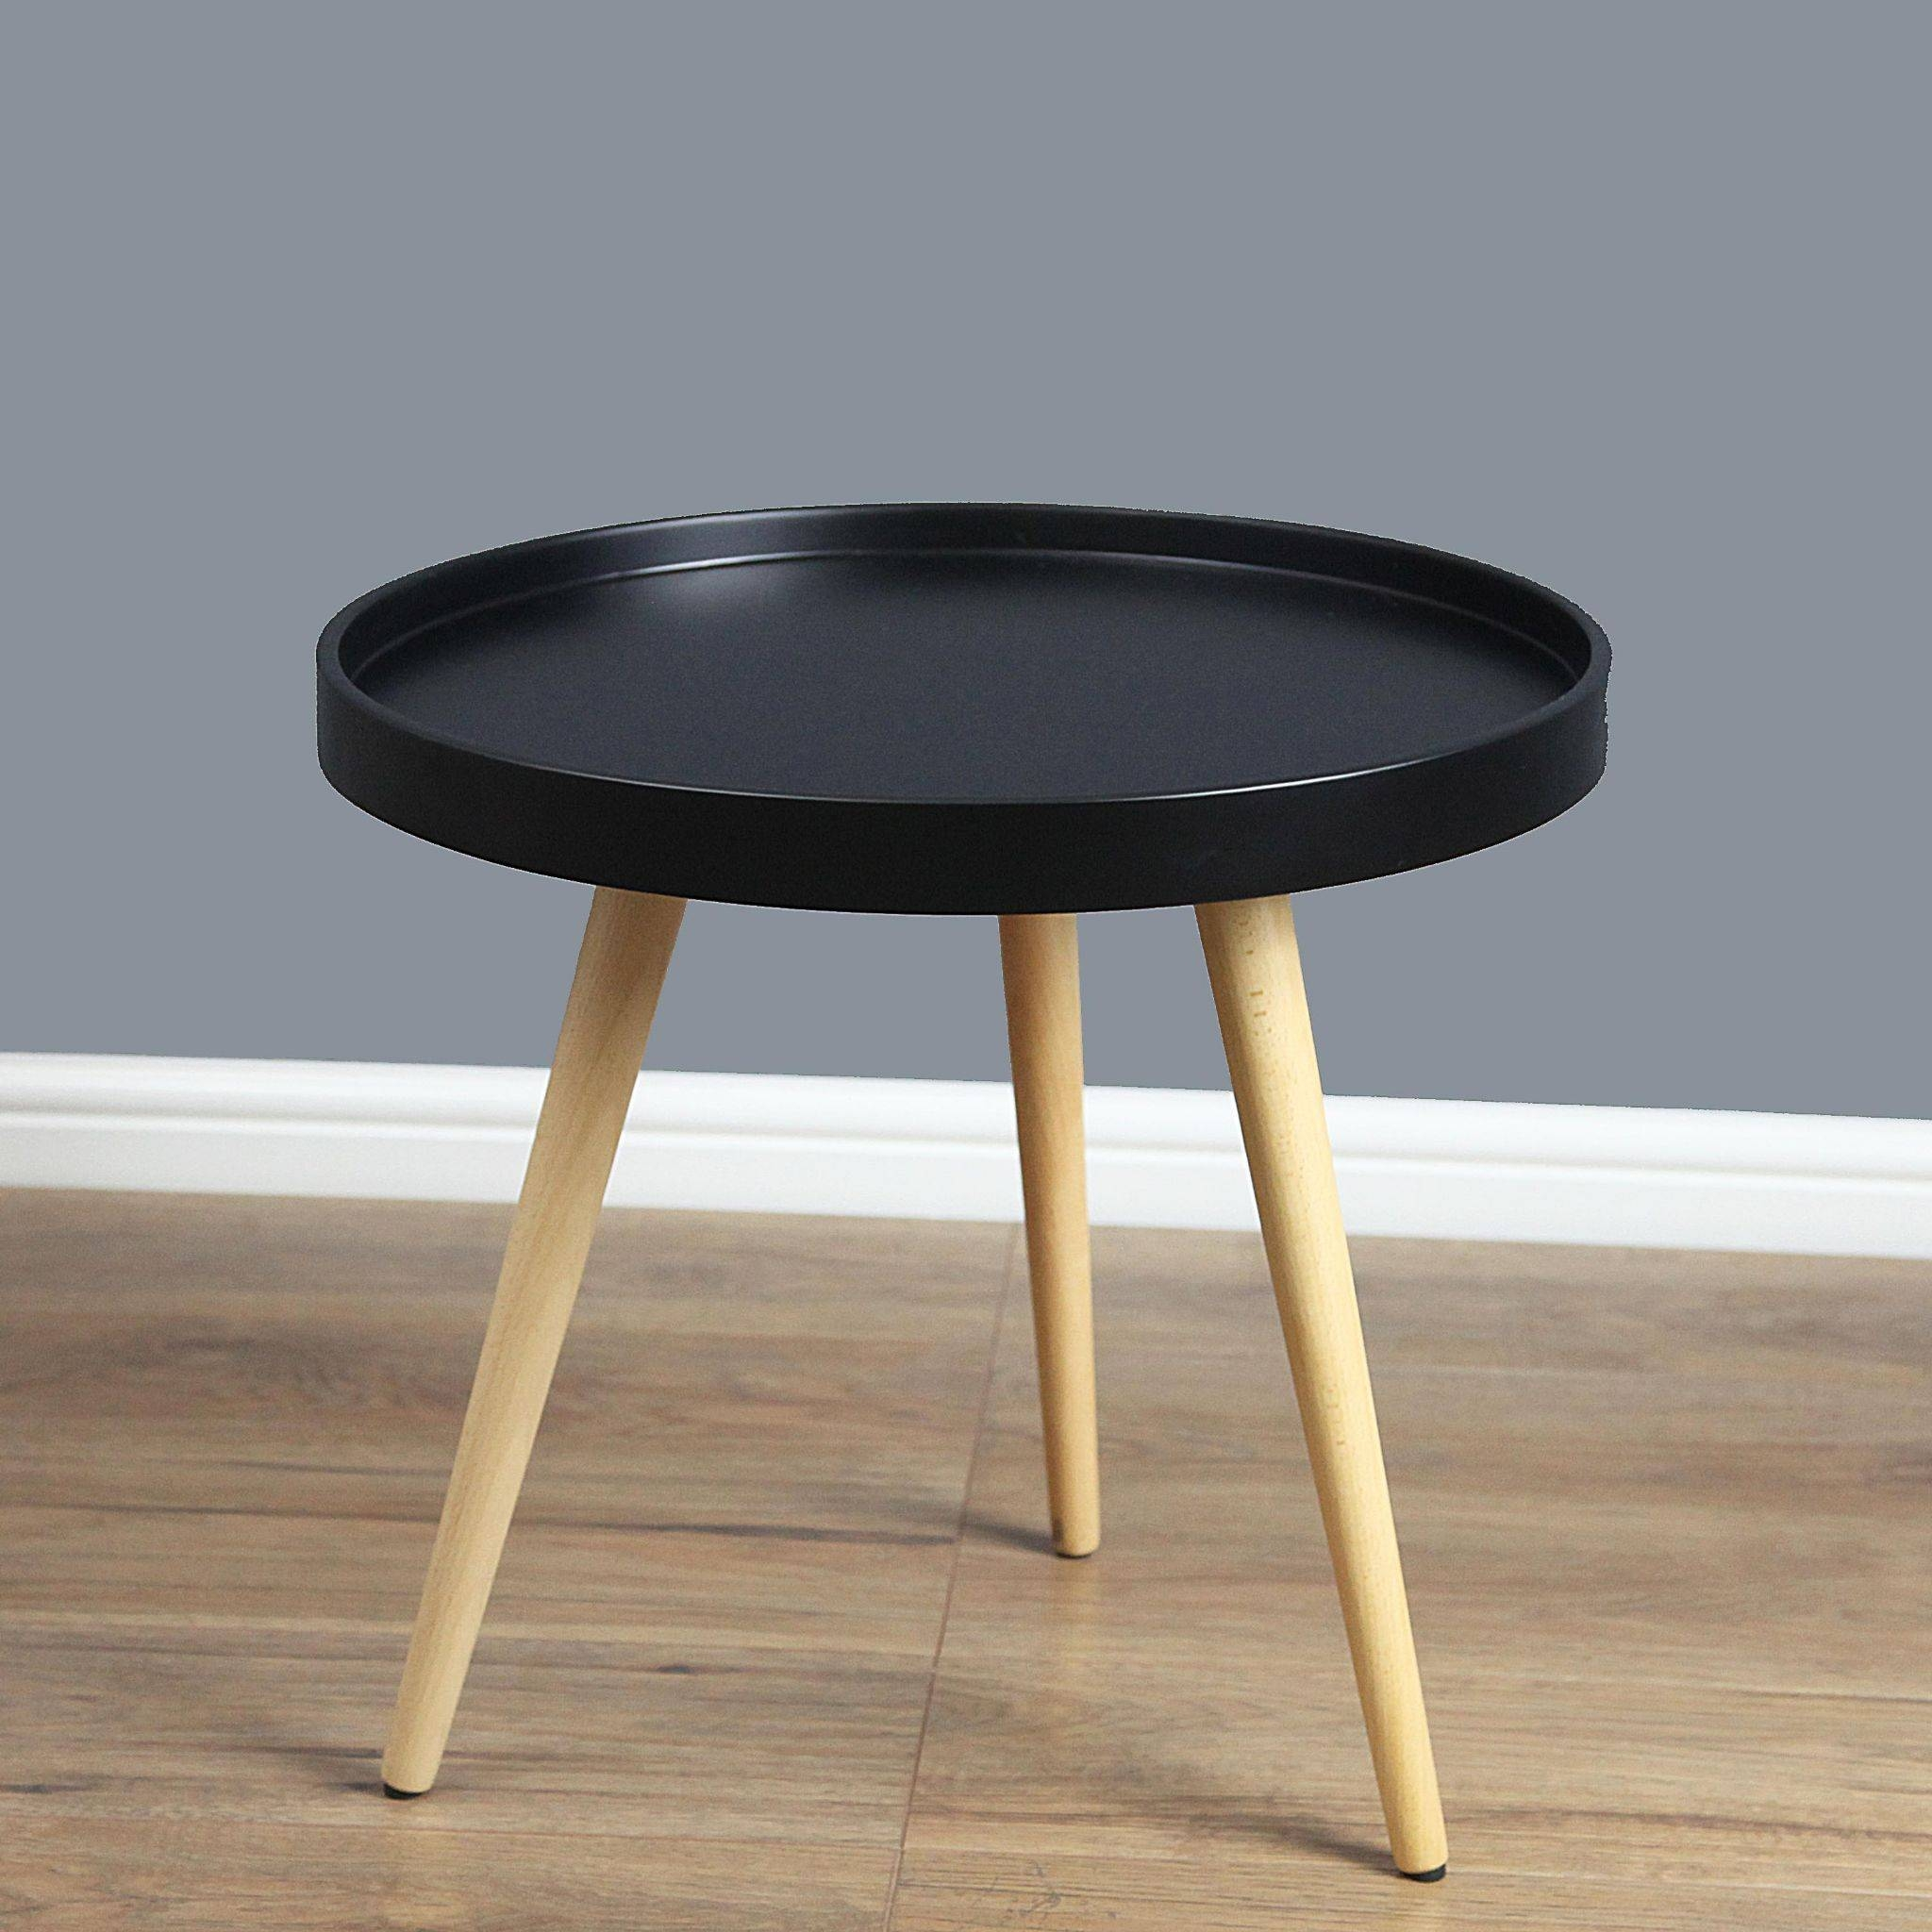 Mmilo Capri Round Tray Table In 60Cm/24Inch- Black within Round Tray Coffee Tables (Image 15 of 30)